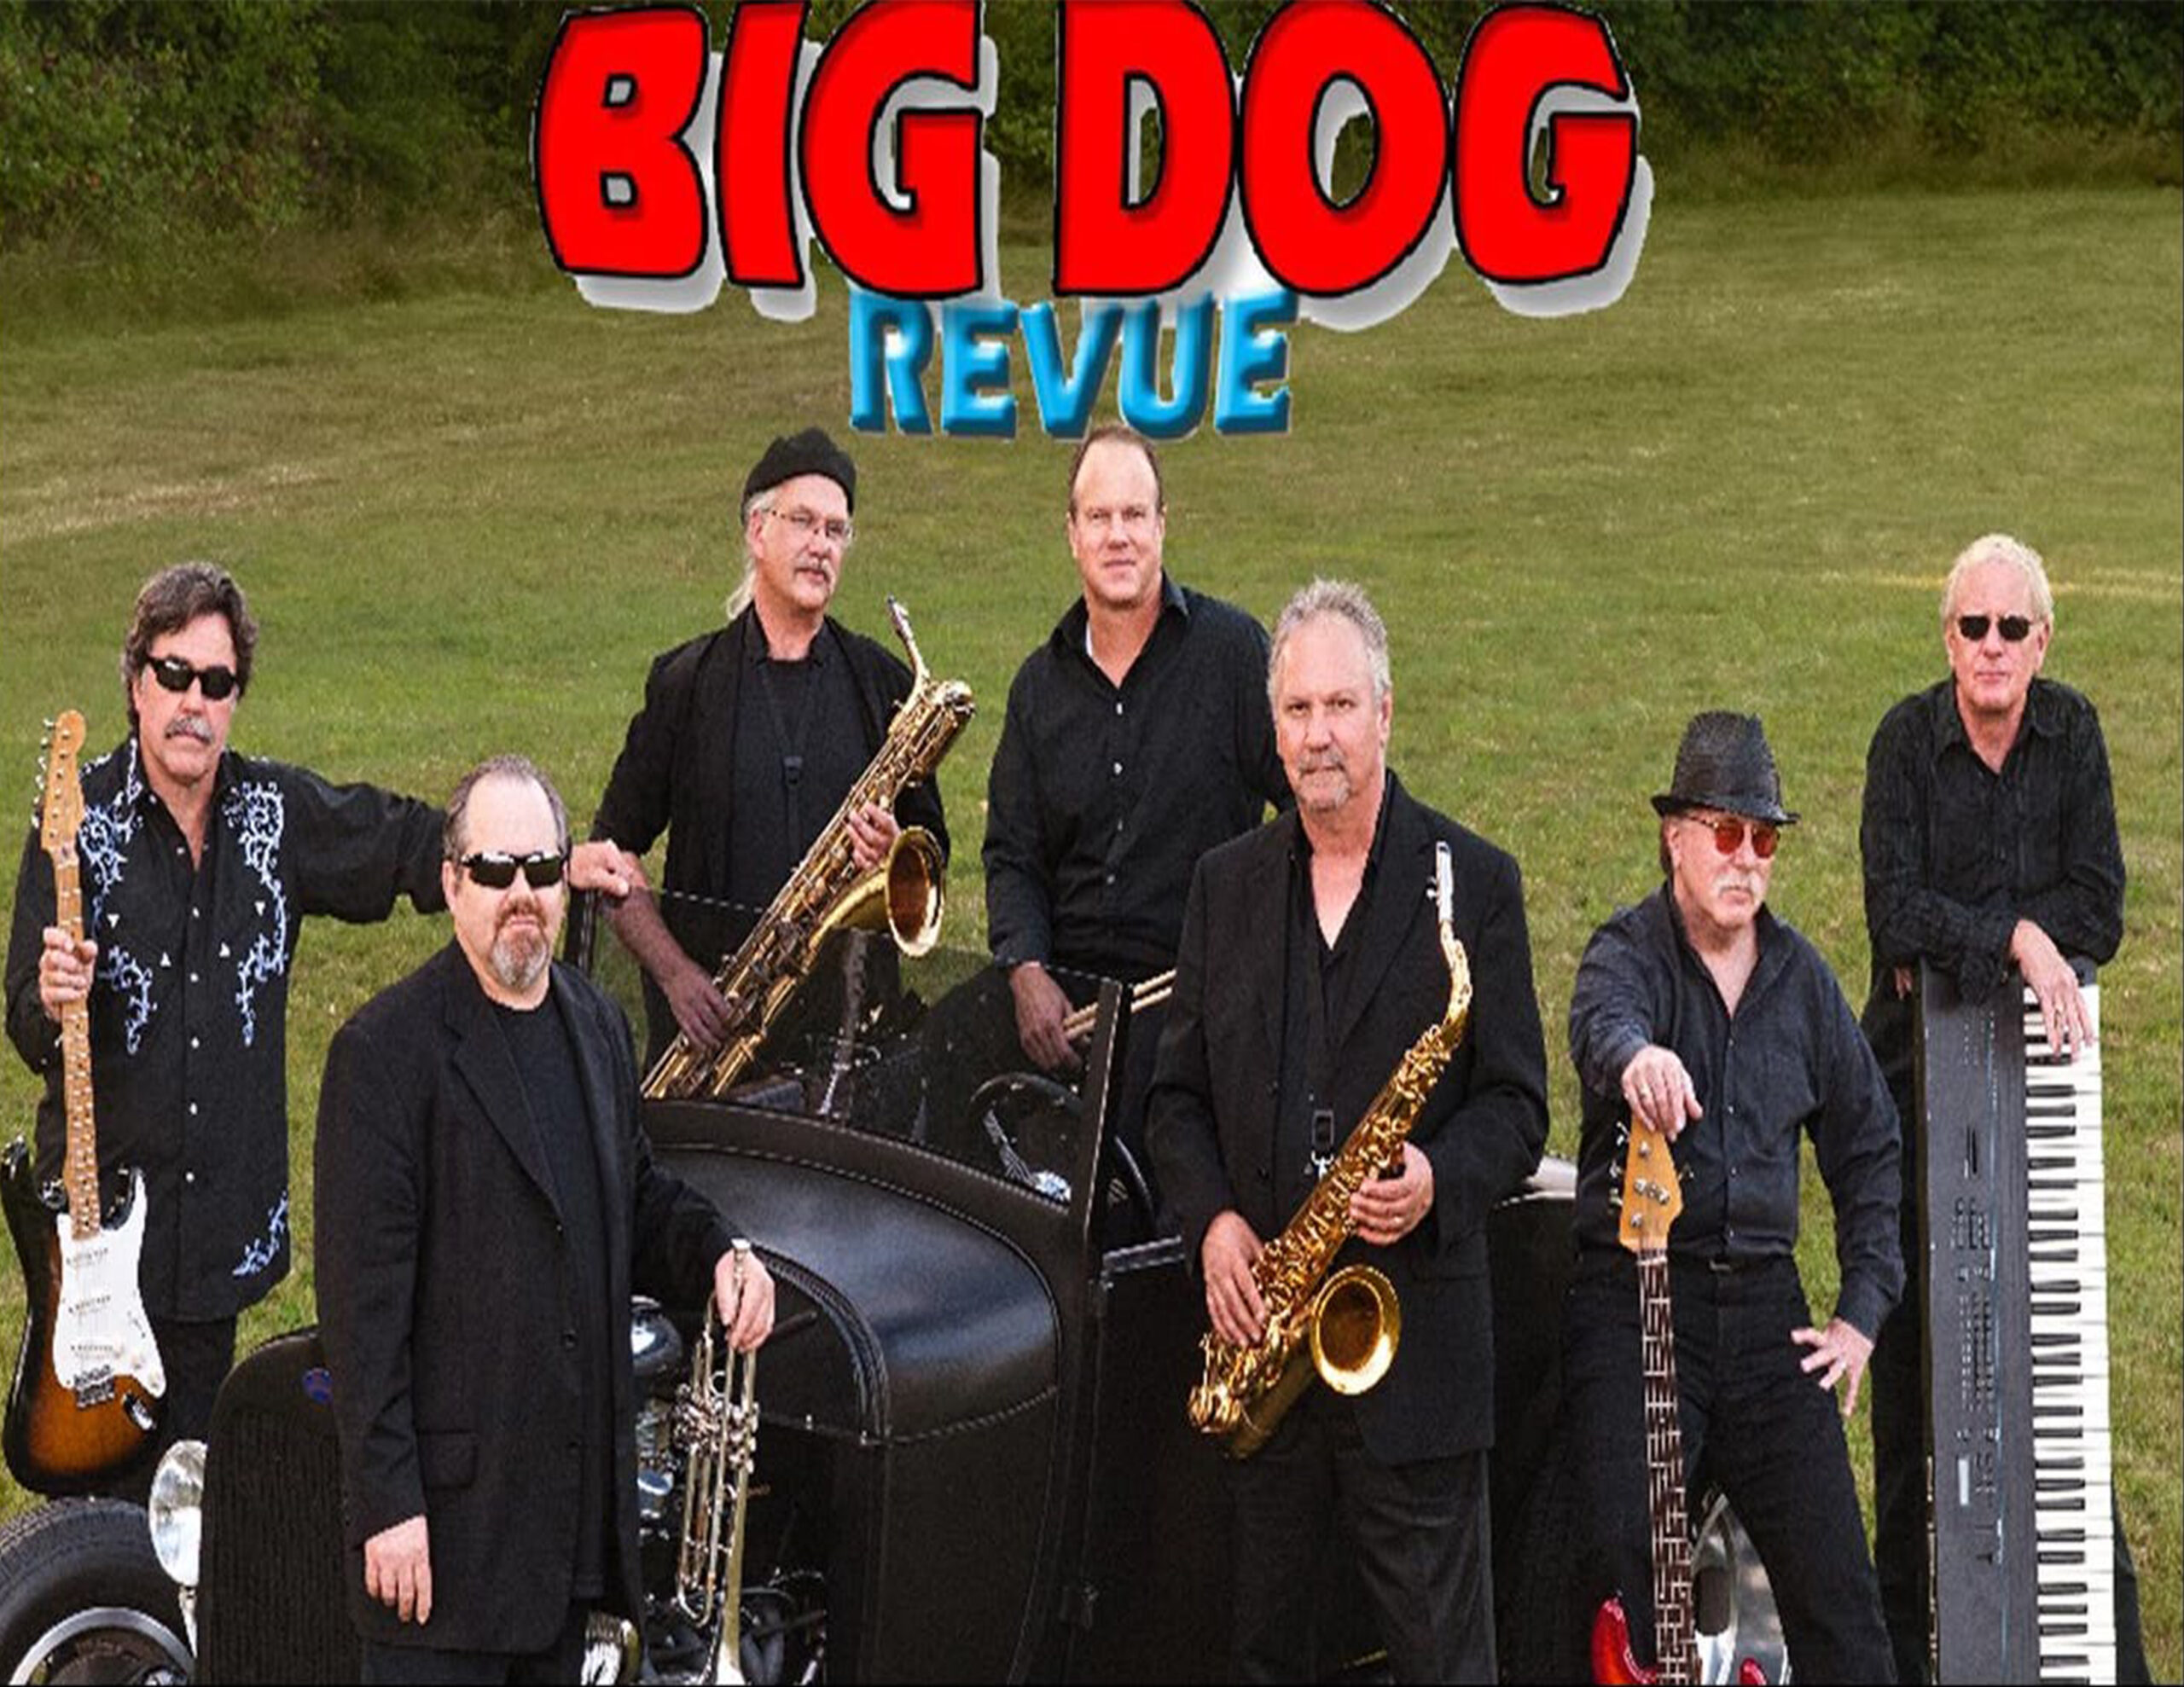 Big Dog Revue